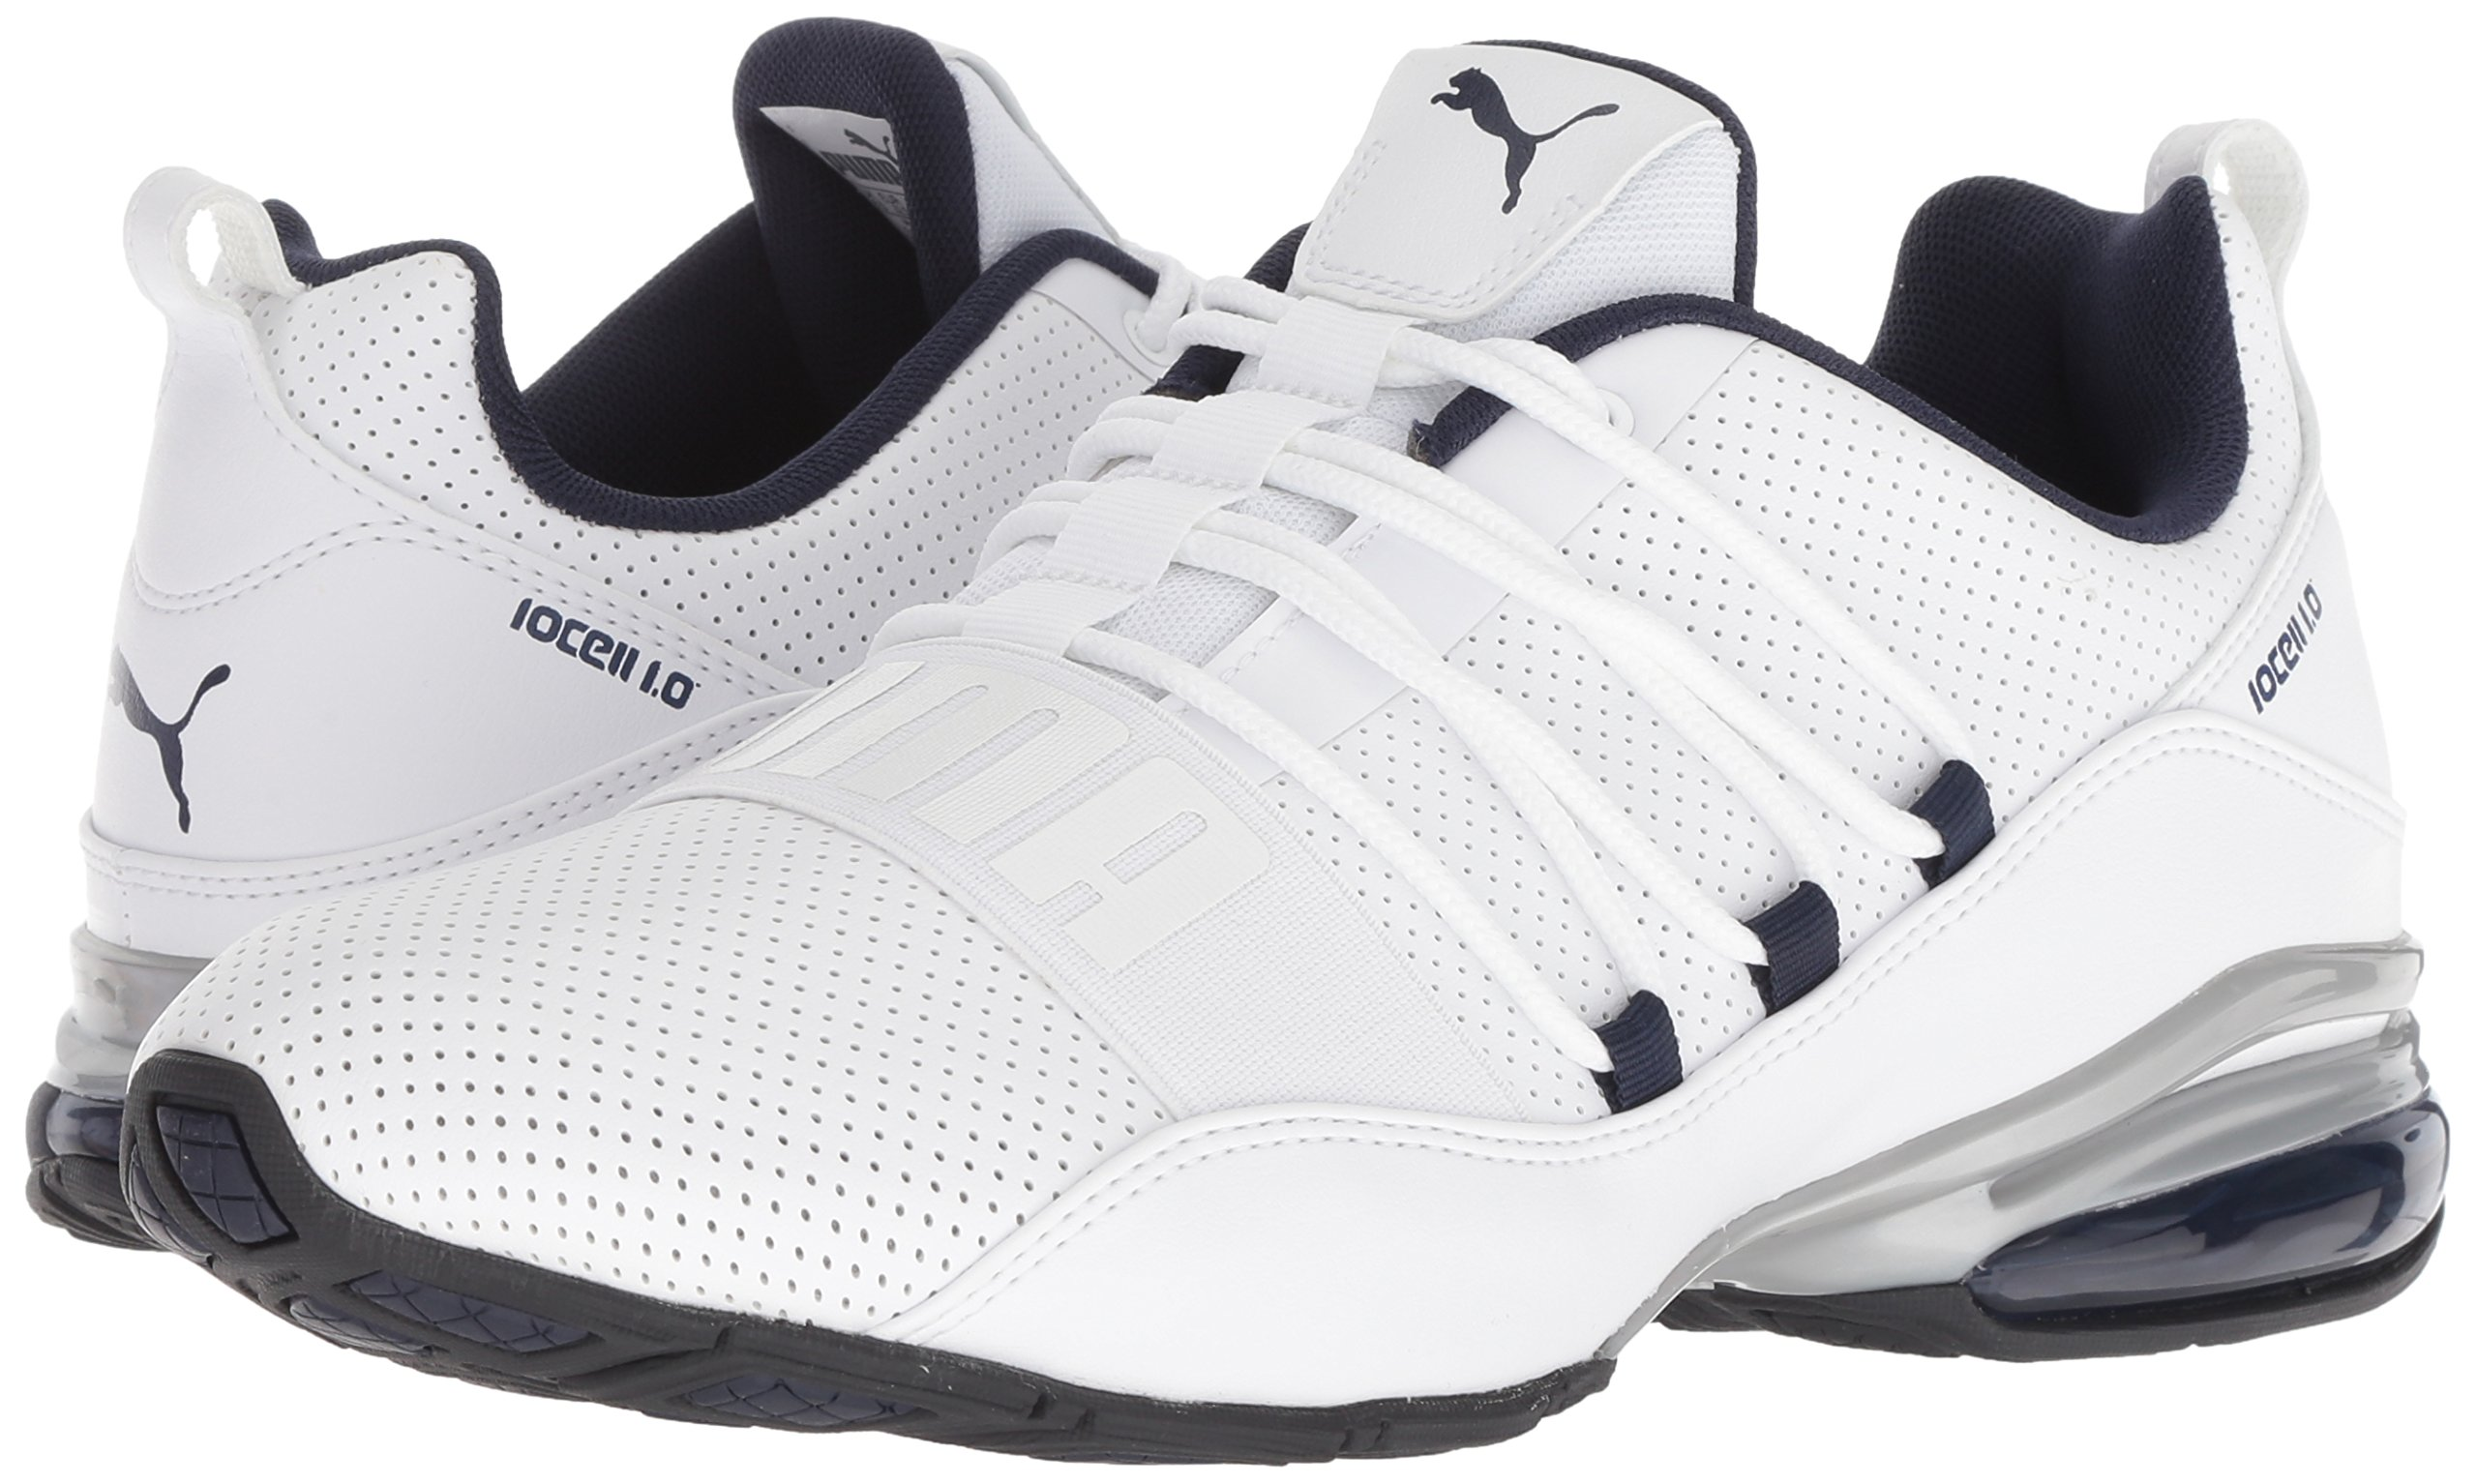 PUMA Men's Cell Regulate SL Sneaker, White Black-Peacoat Silver, 7 M US by PUMA (Image #5)